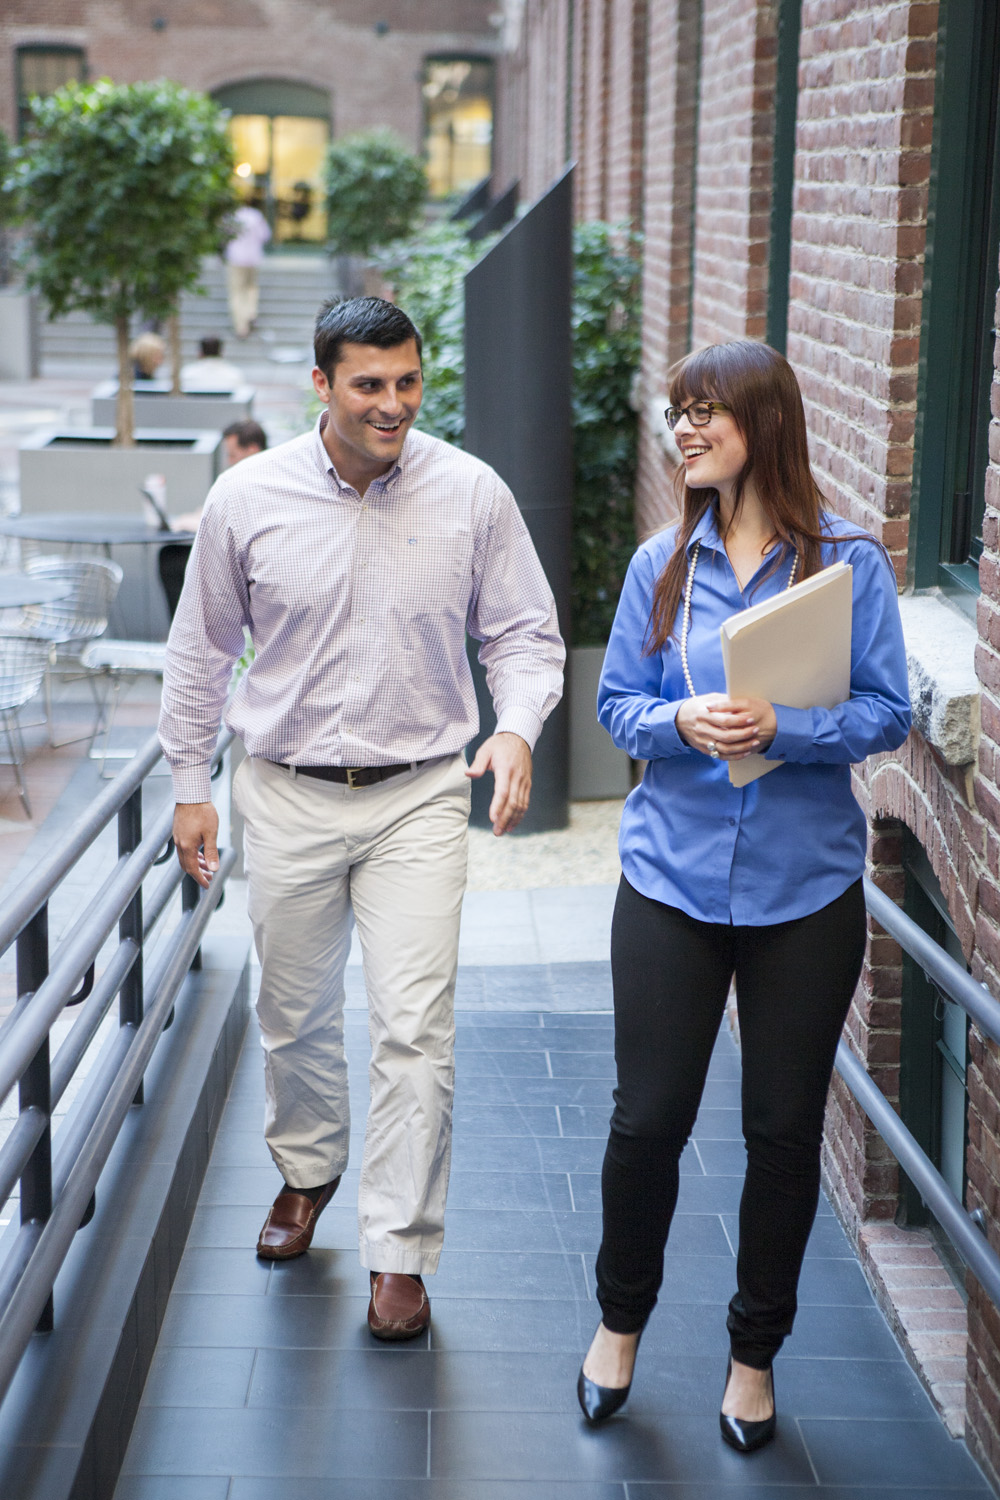 Take a walk with your team members for one-on-one meetings